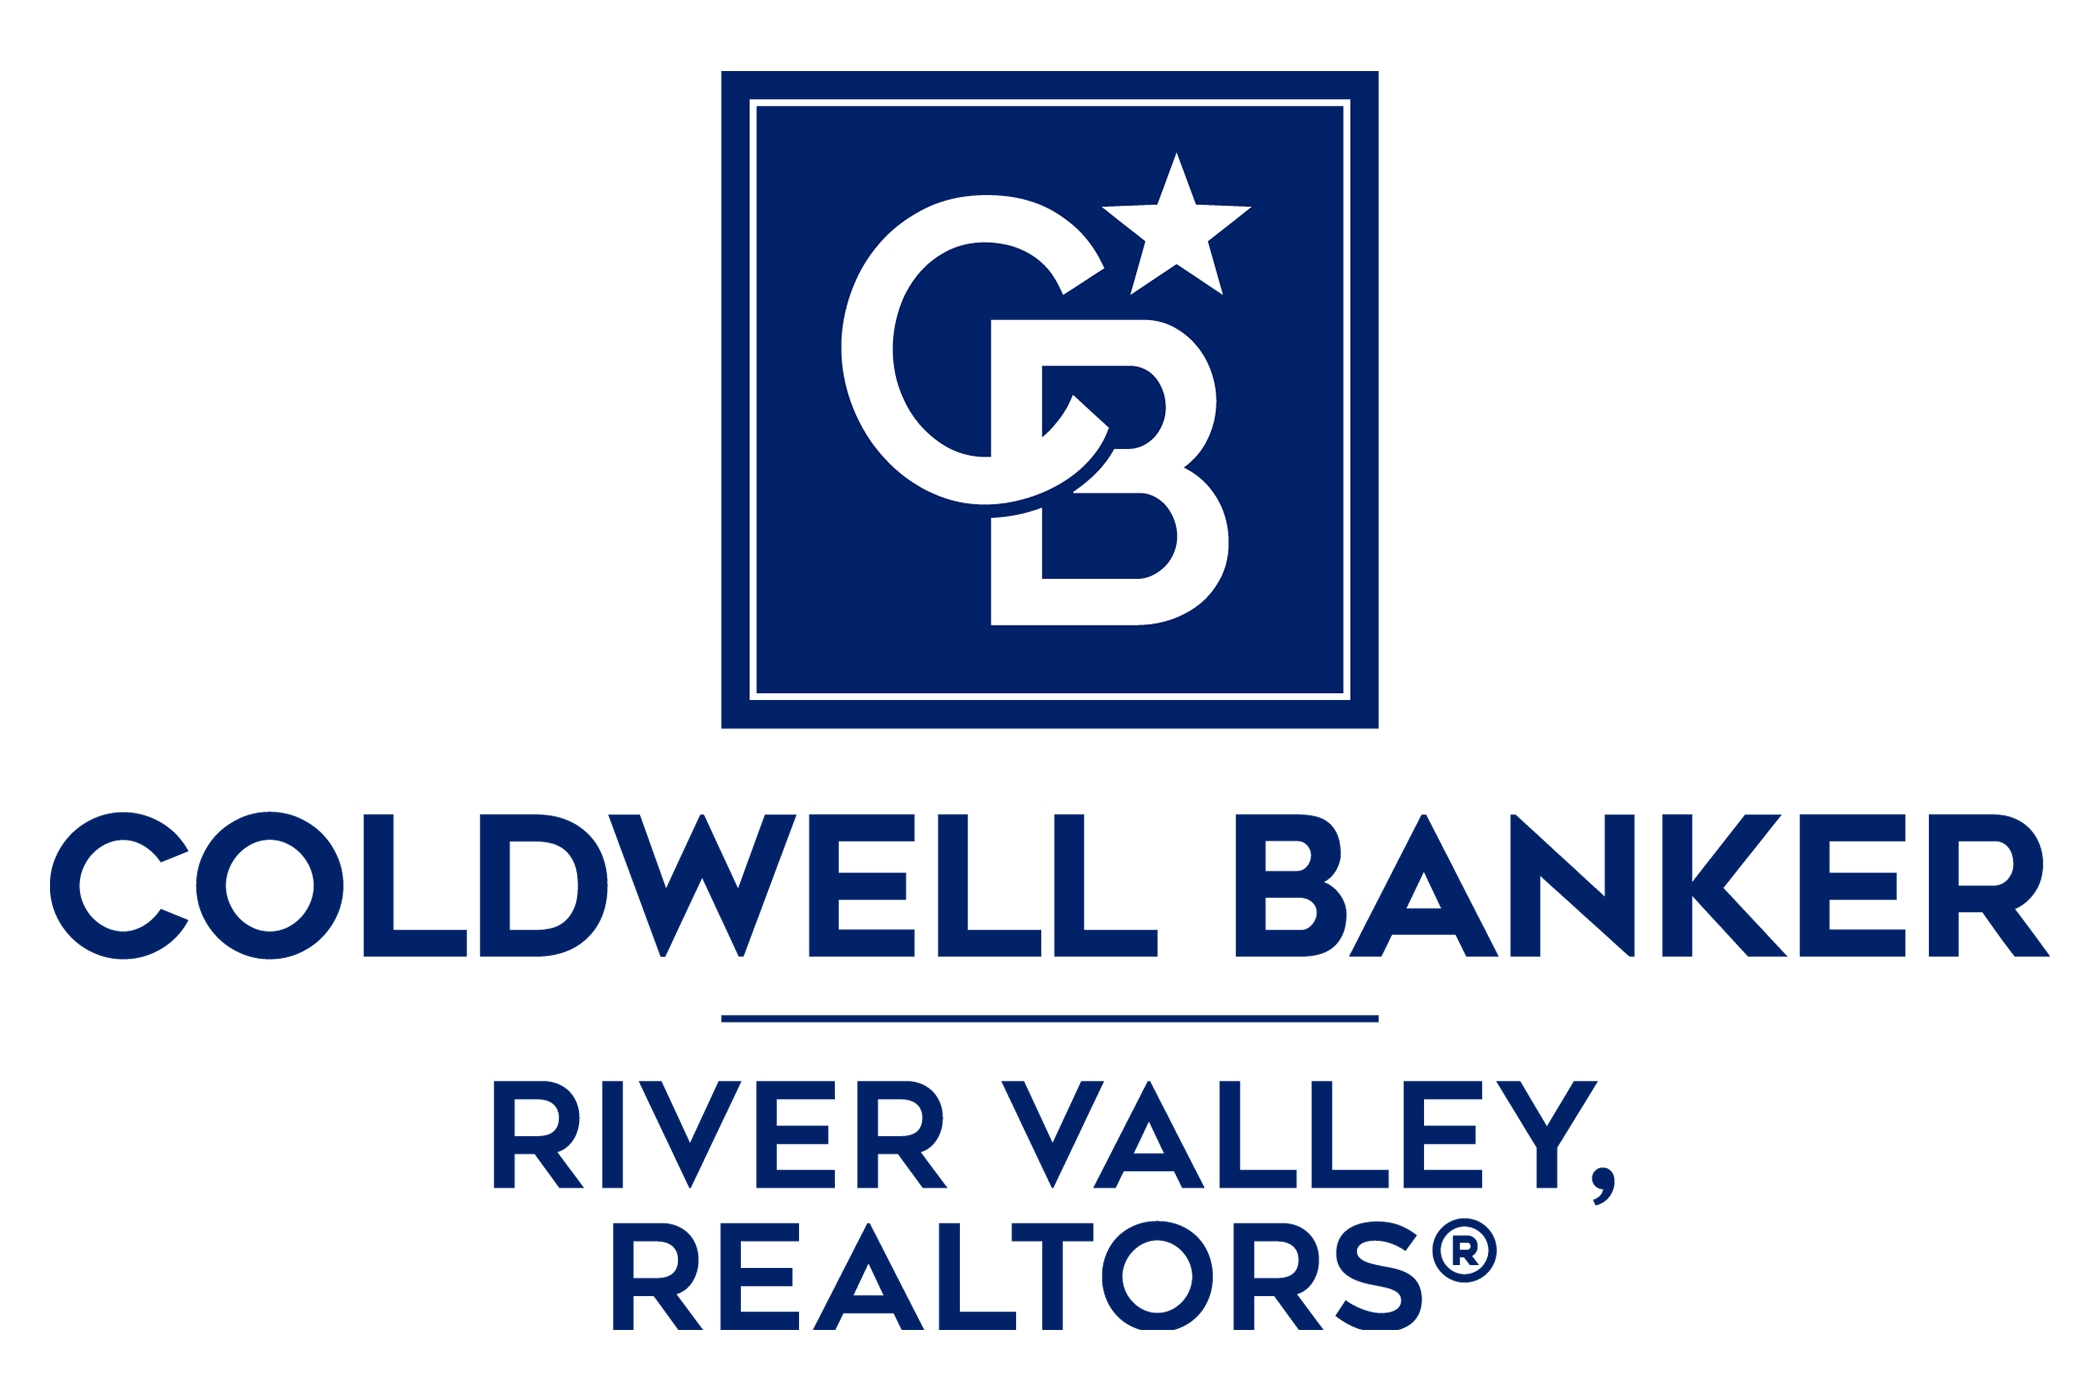 Michele Giraud - Coldwell Banker River Valley Realtors